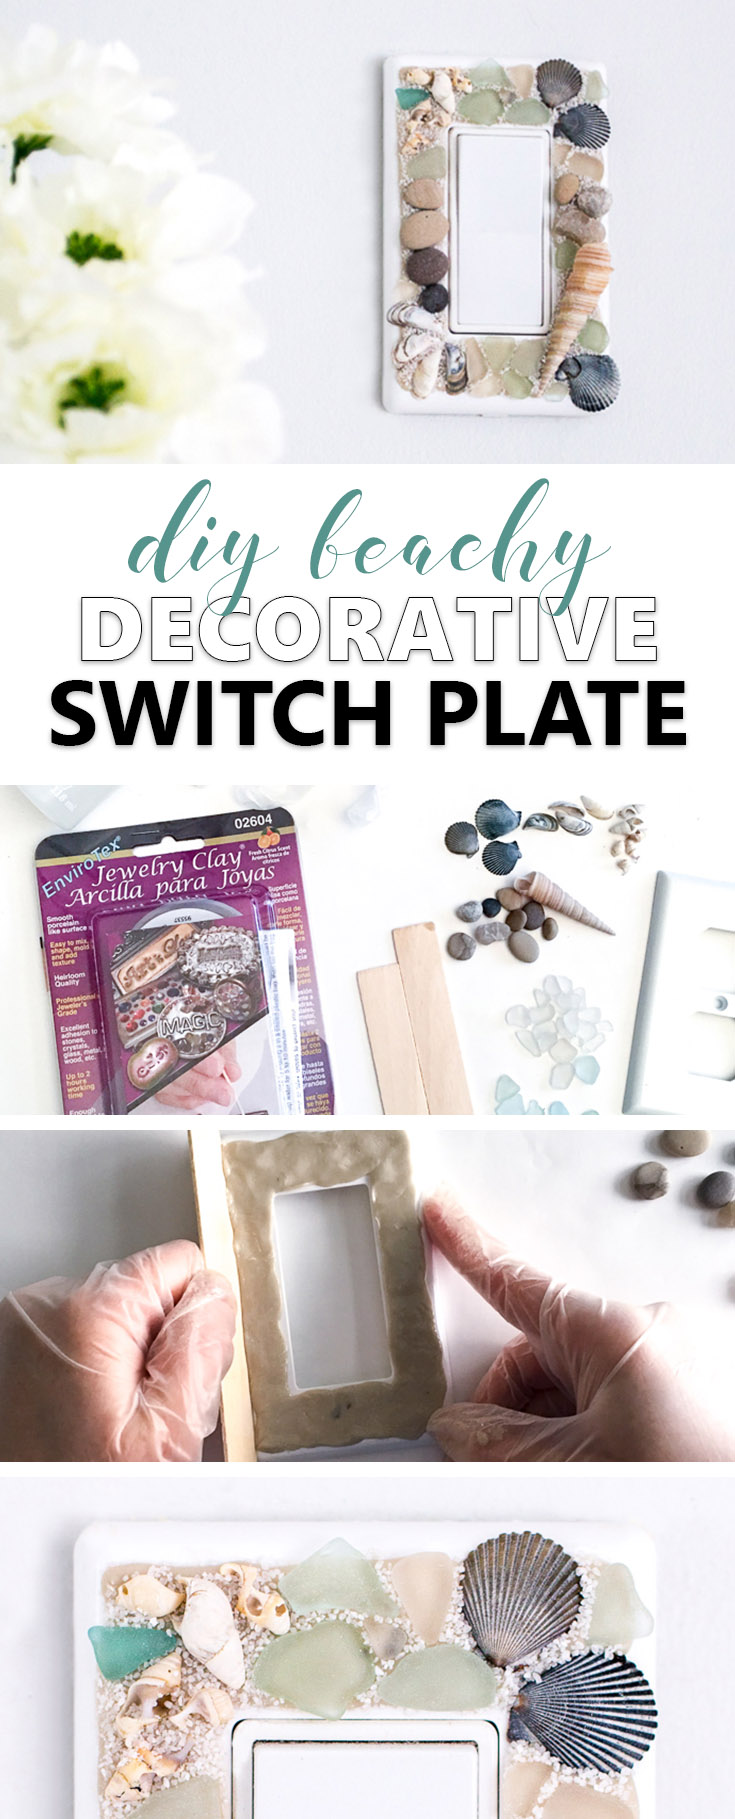 Learn how to make your own beachy decorative switch plates with sea glass, stones and shells. An easy way to embellish those light switch covers for a coastal vibe!